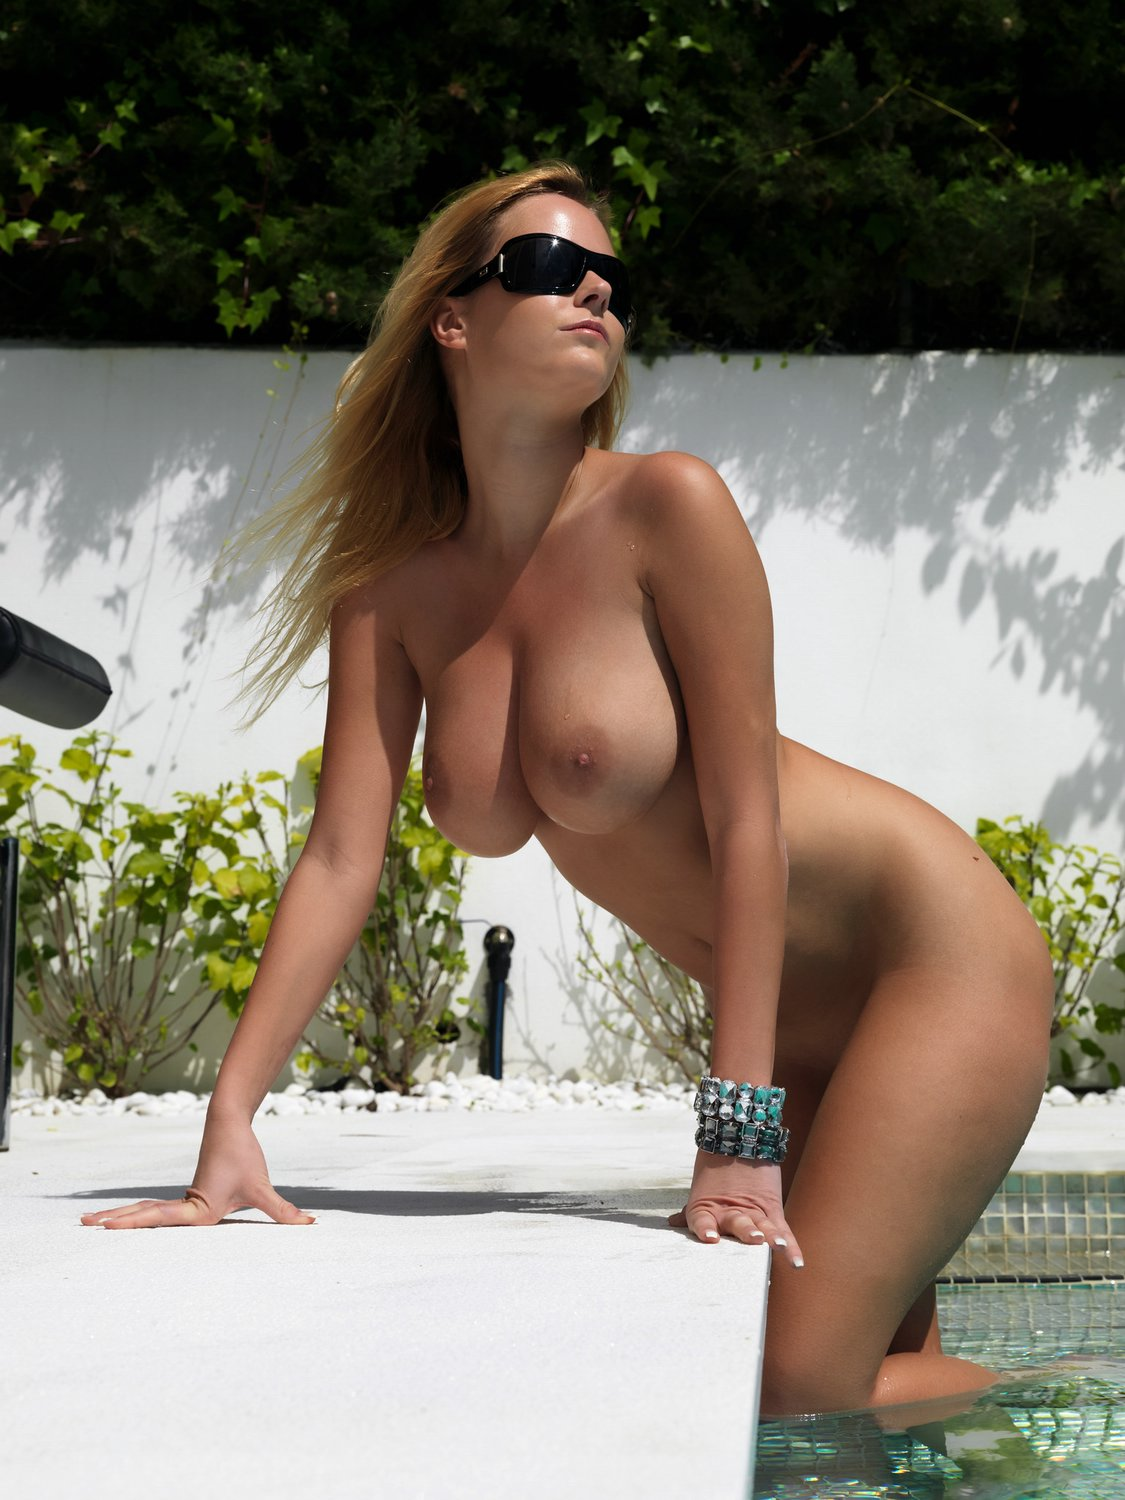 girls-nude-in-pool-wet-photo-mix-vol6-93